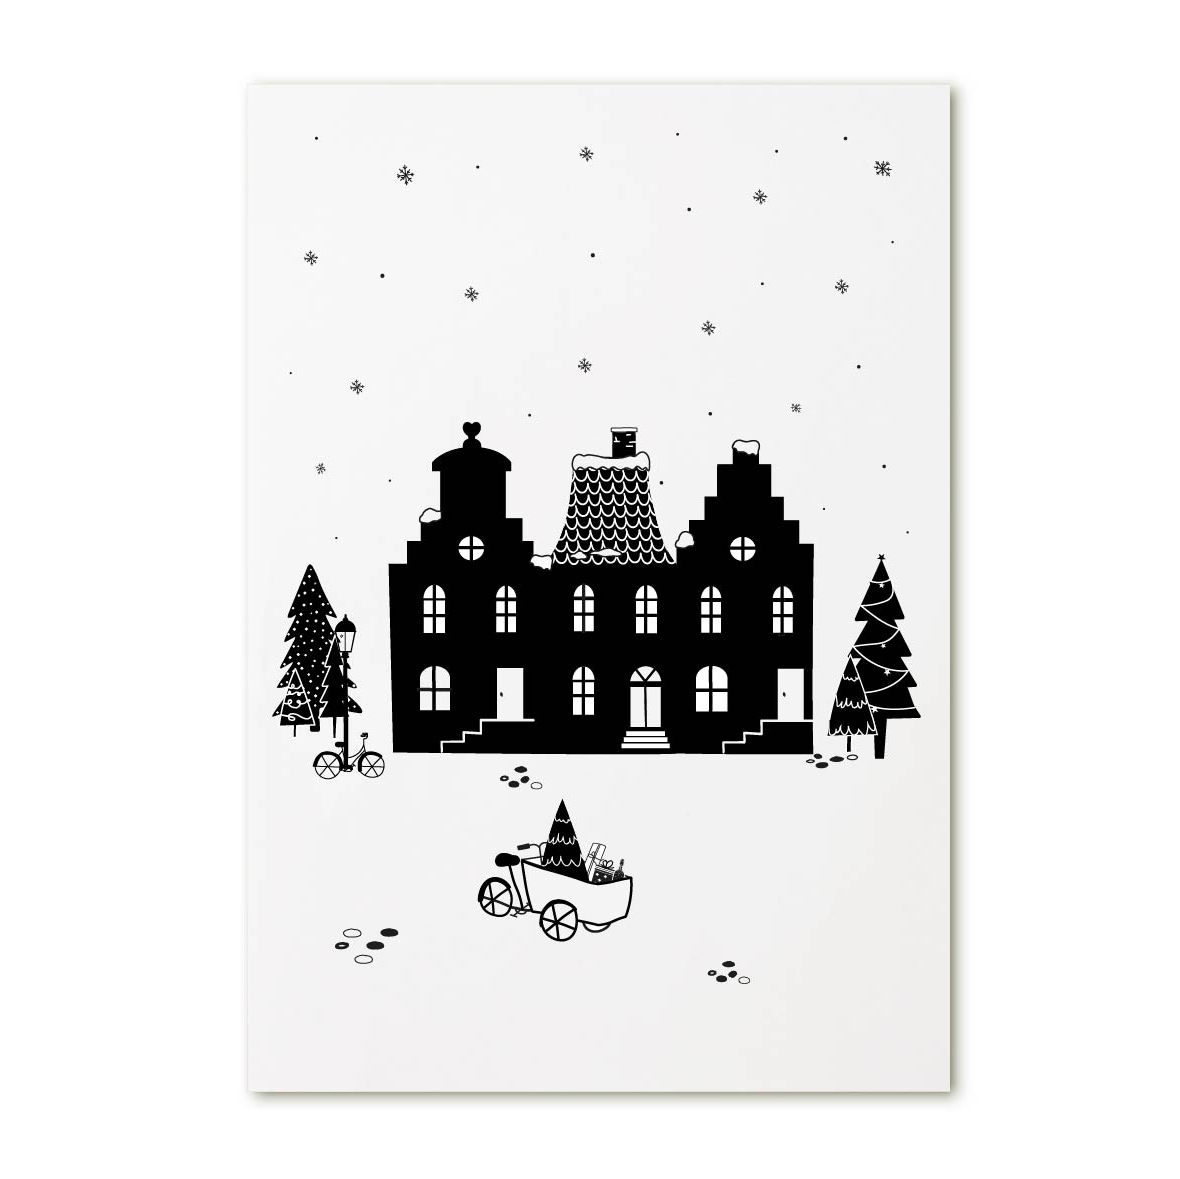 zoedt-a4-poster-kerst